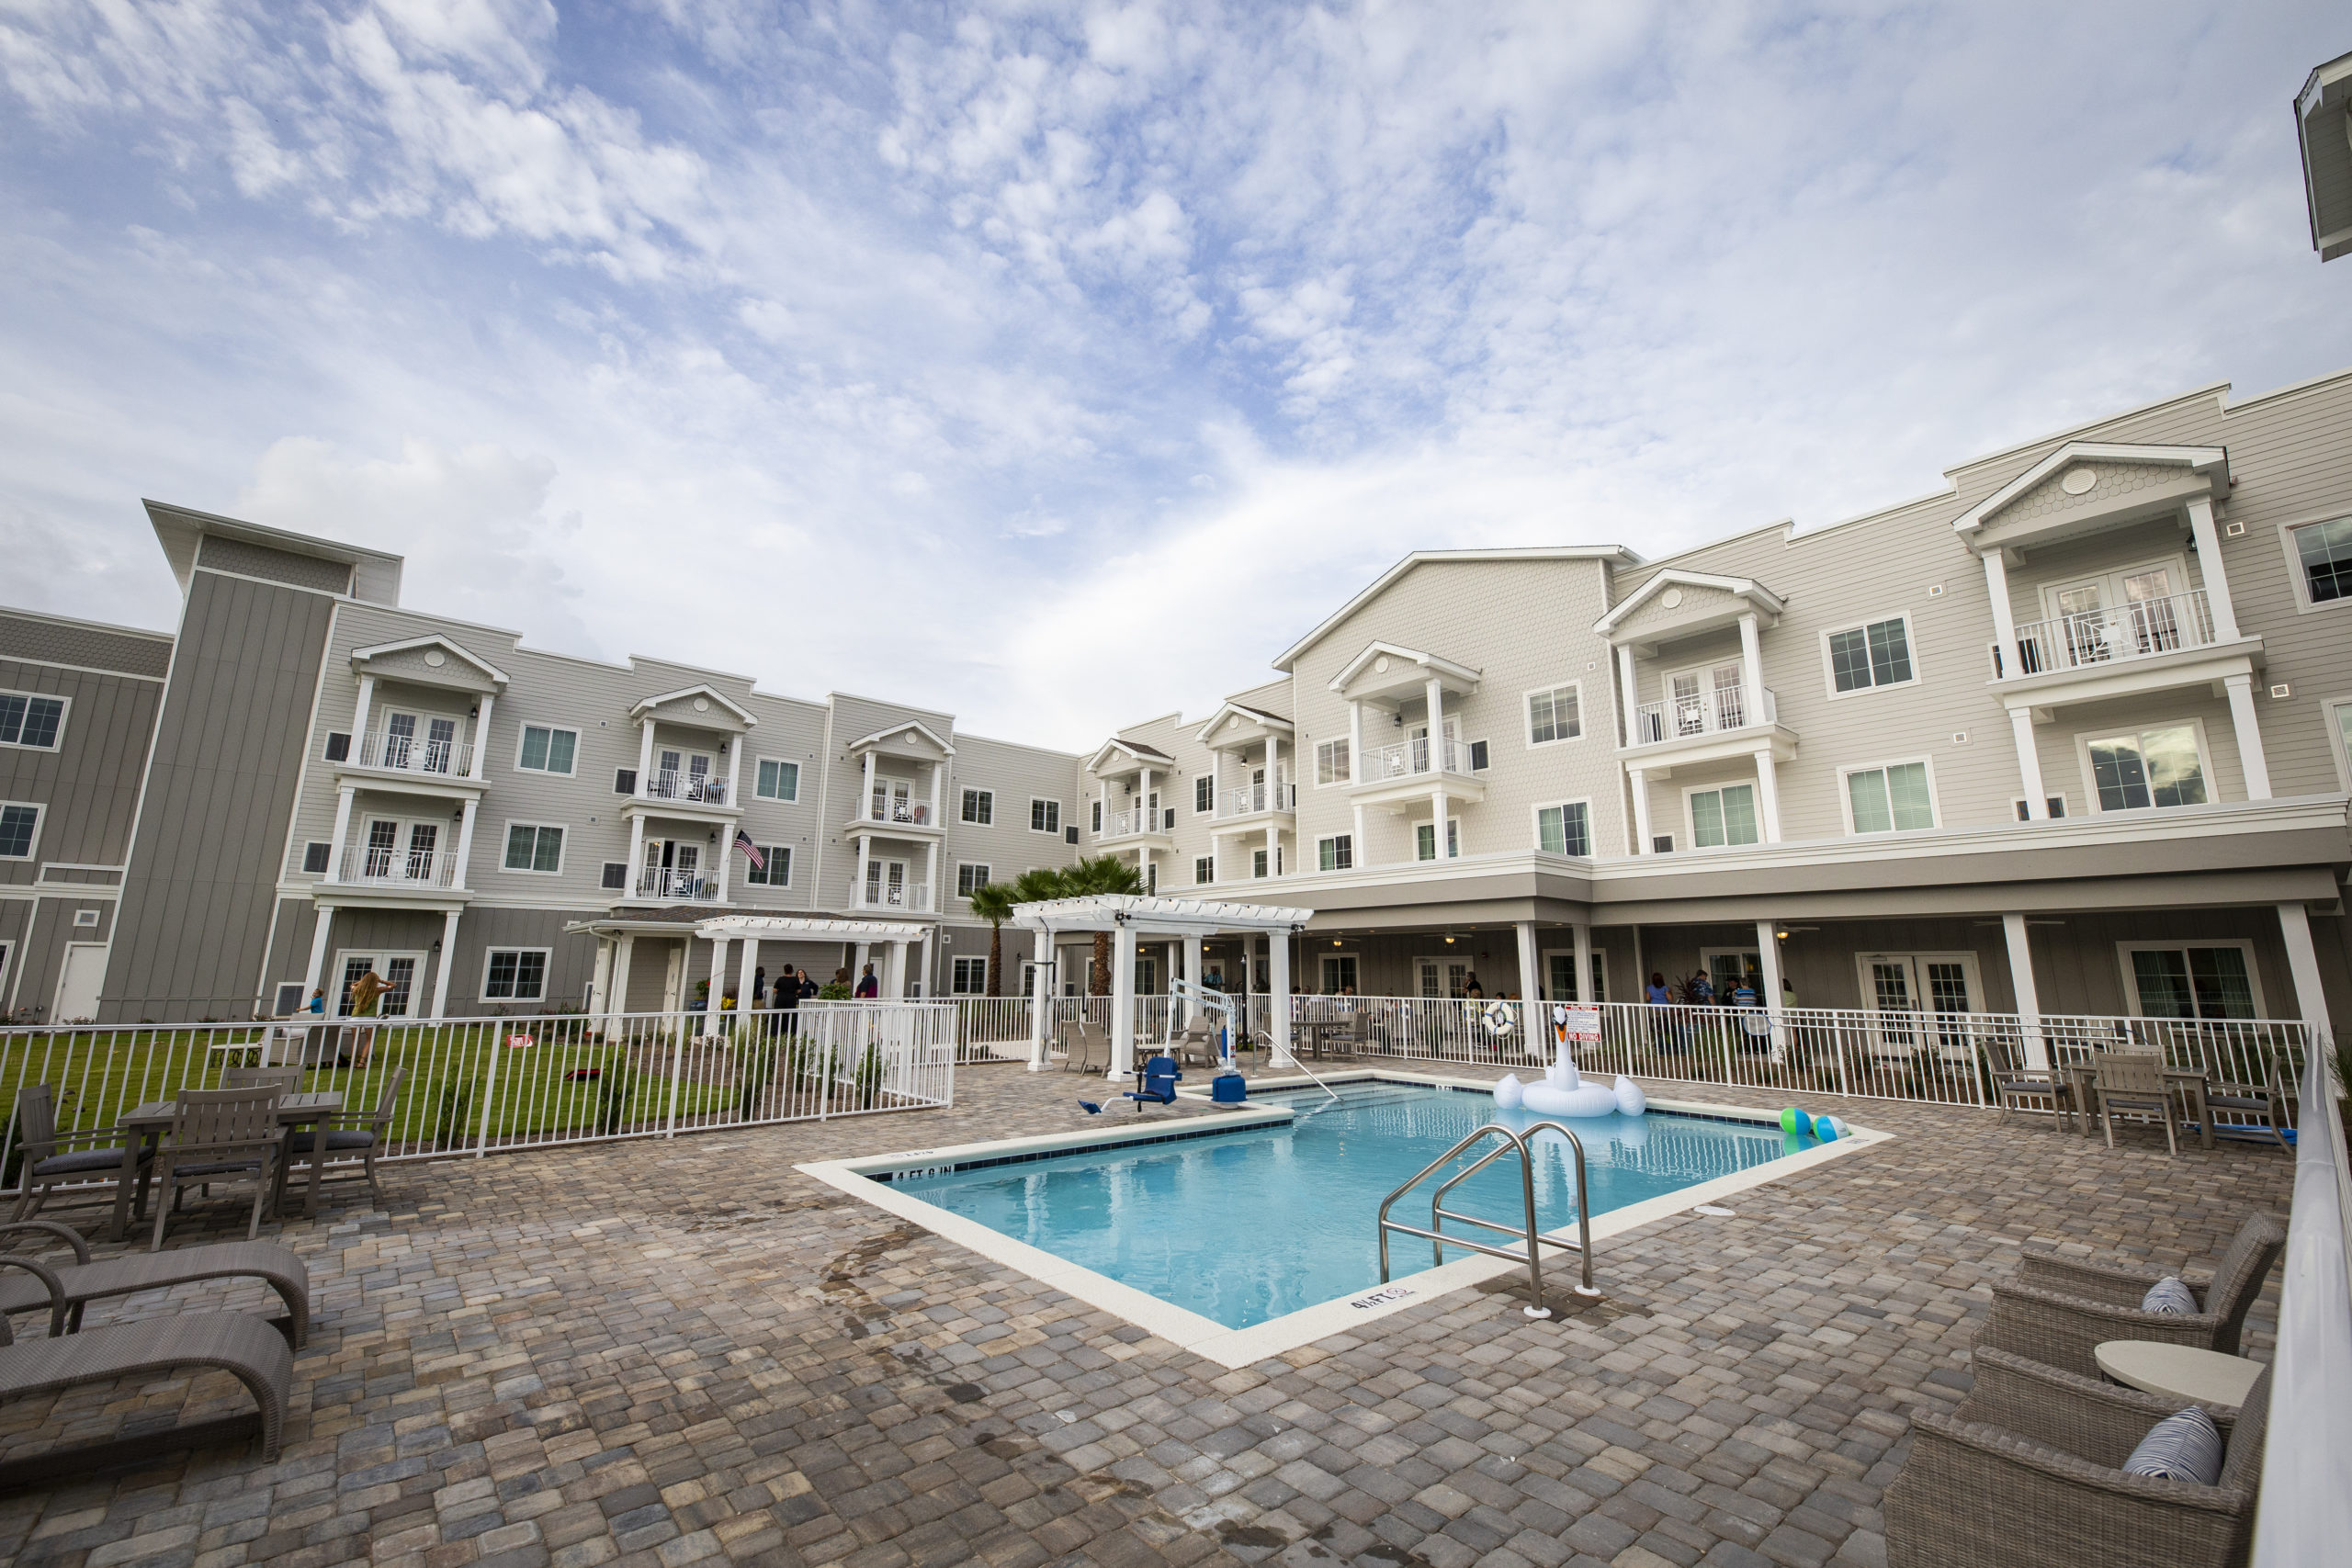 View of swimming pool at Seagrass Village of Panama City Beach a 55+ independent living community for seniors